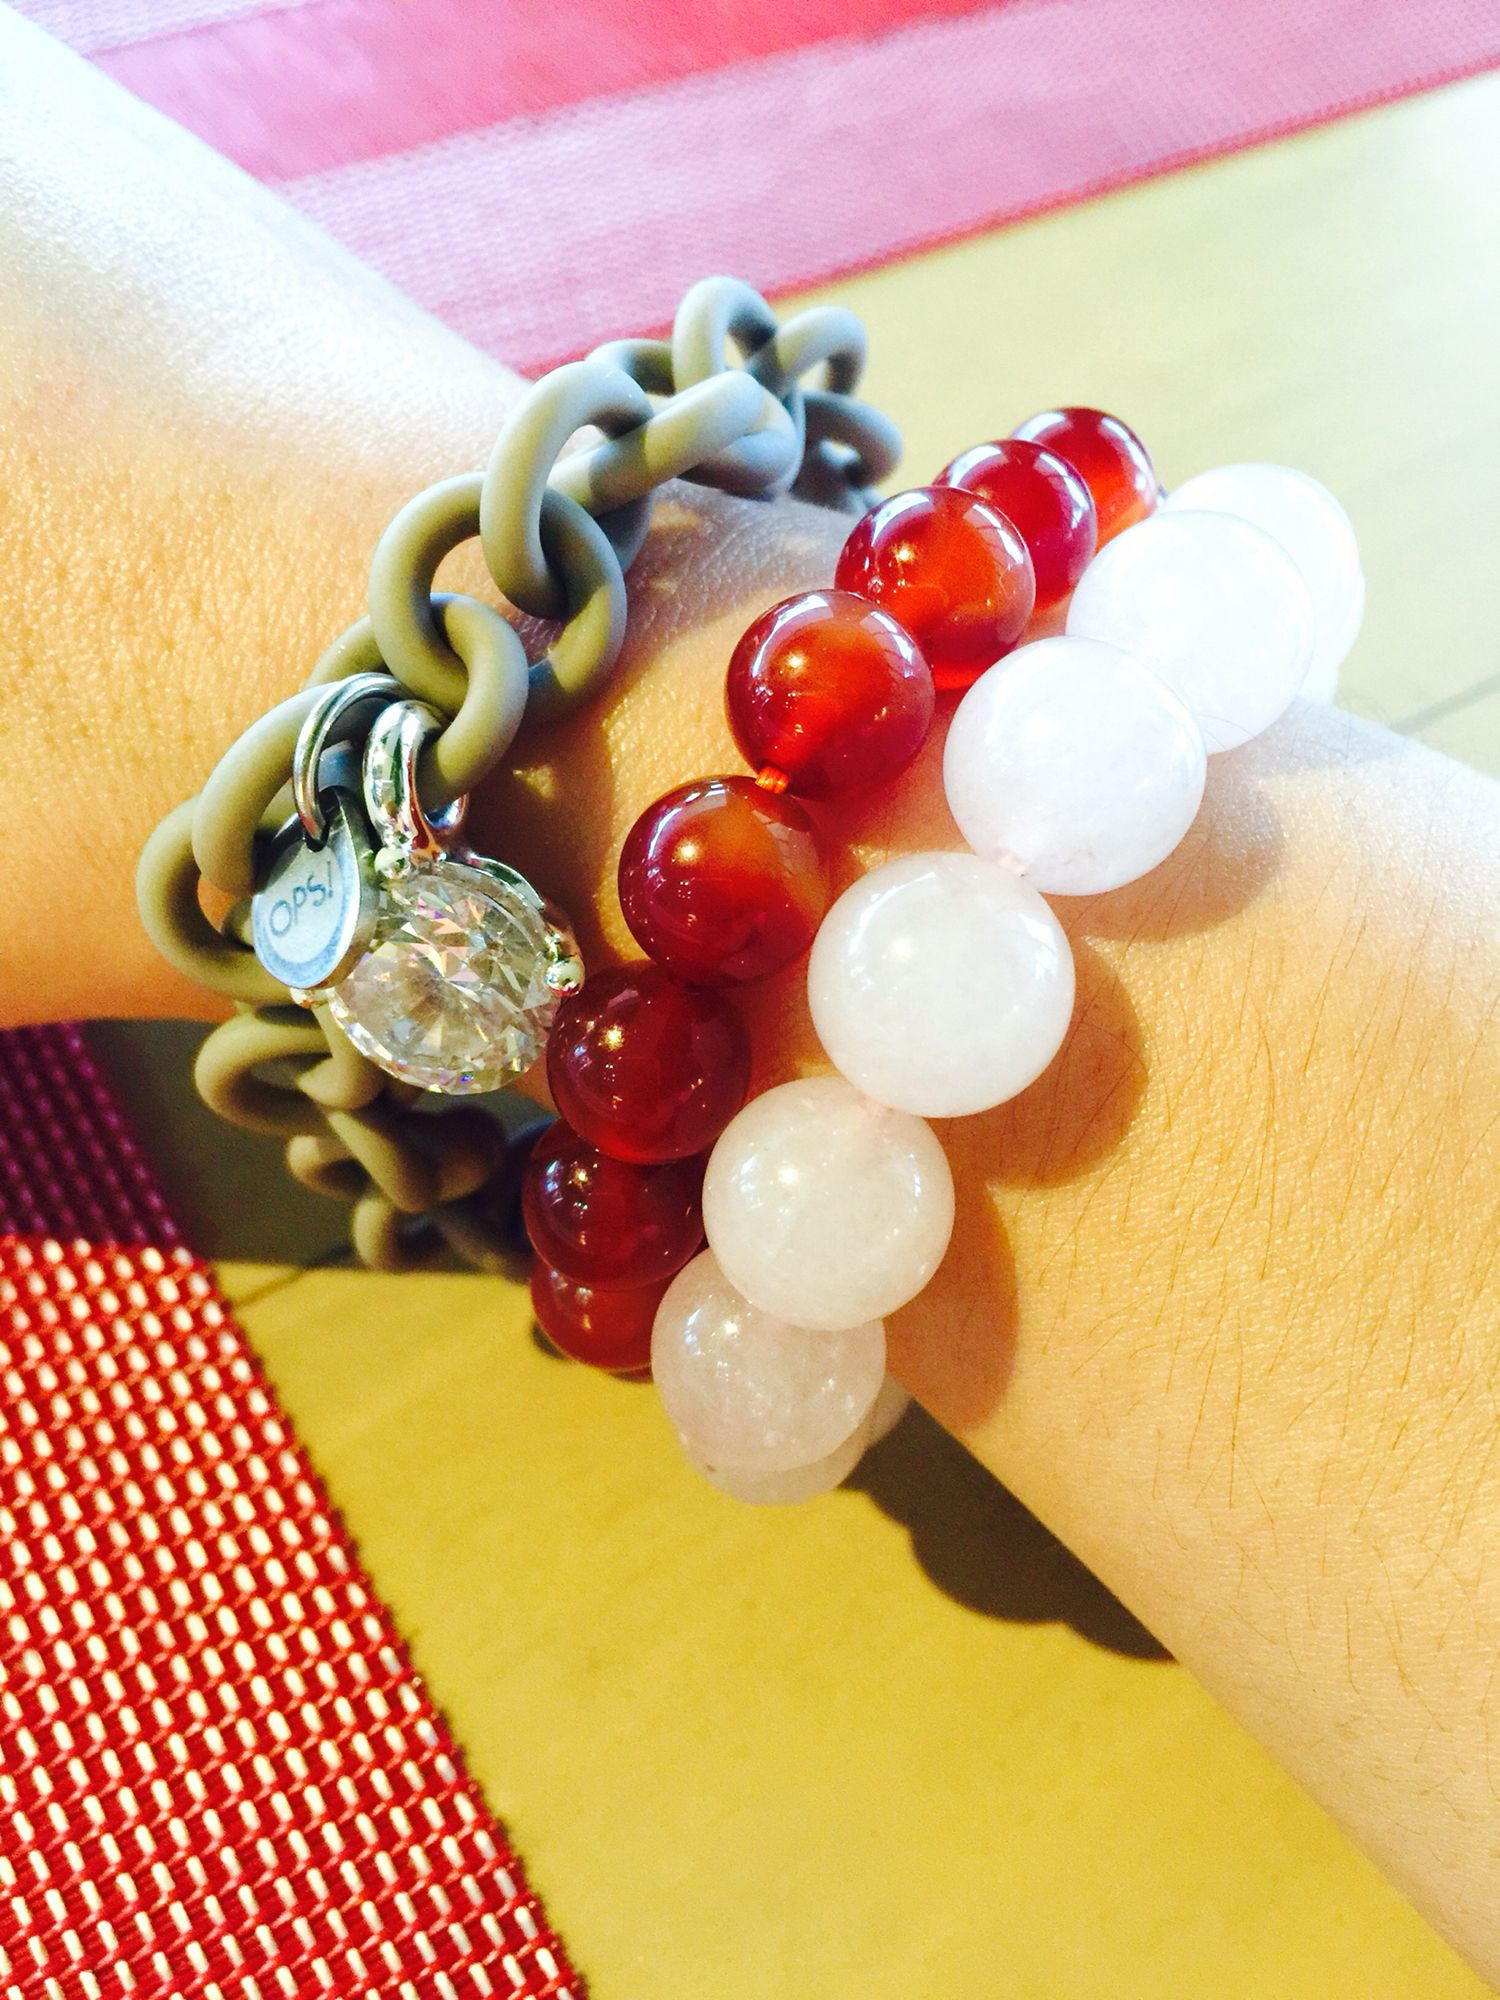 Wearing my ever favorite Love stone, Rose Quartz and Ops bracelet. The one in the middle is a Carnelian, recently bought it for a specific purpose